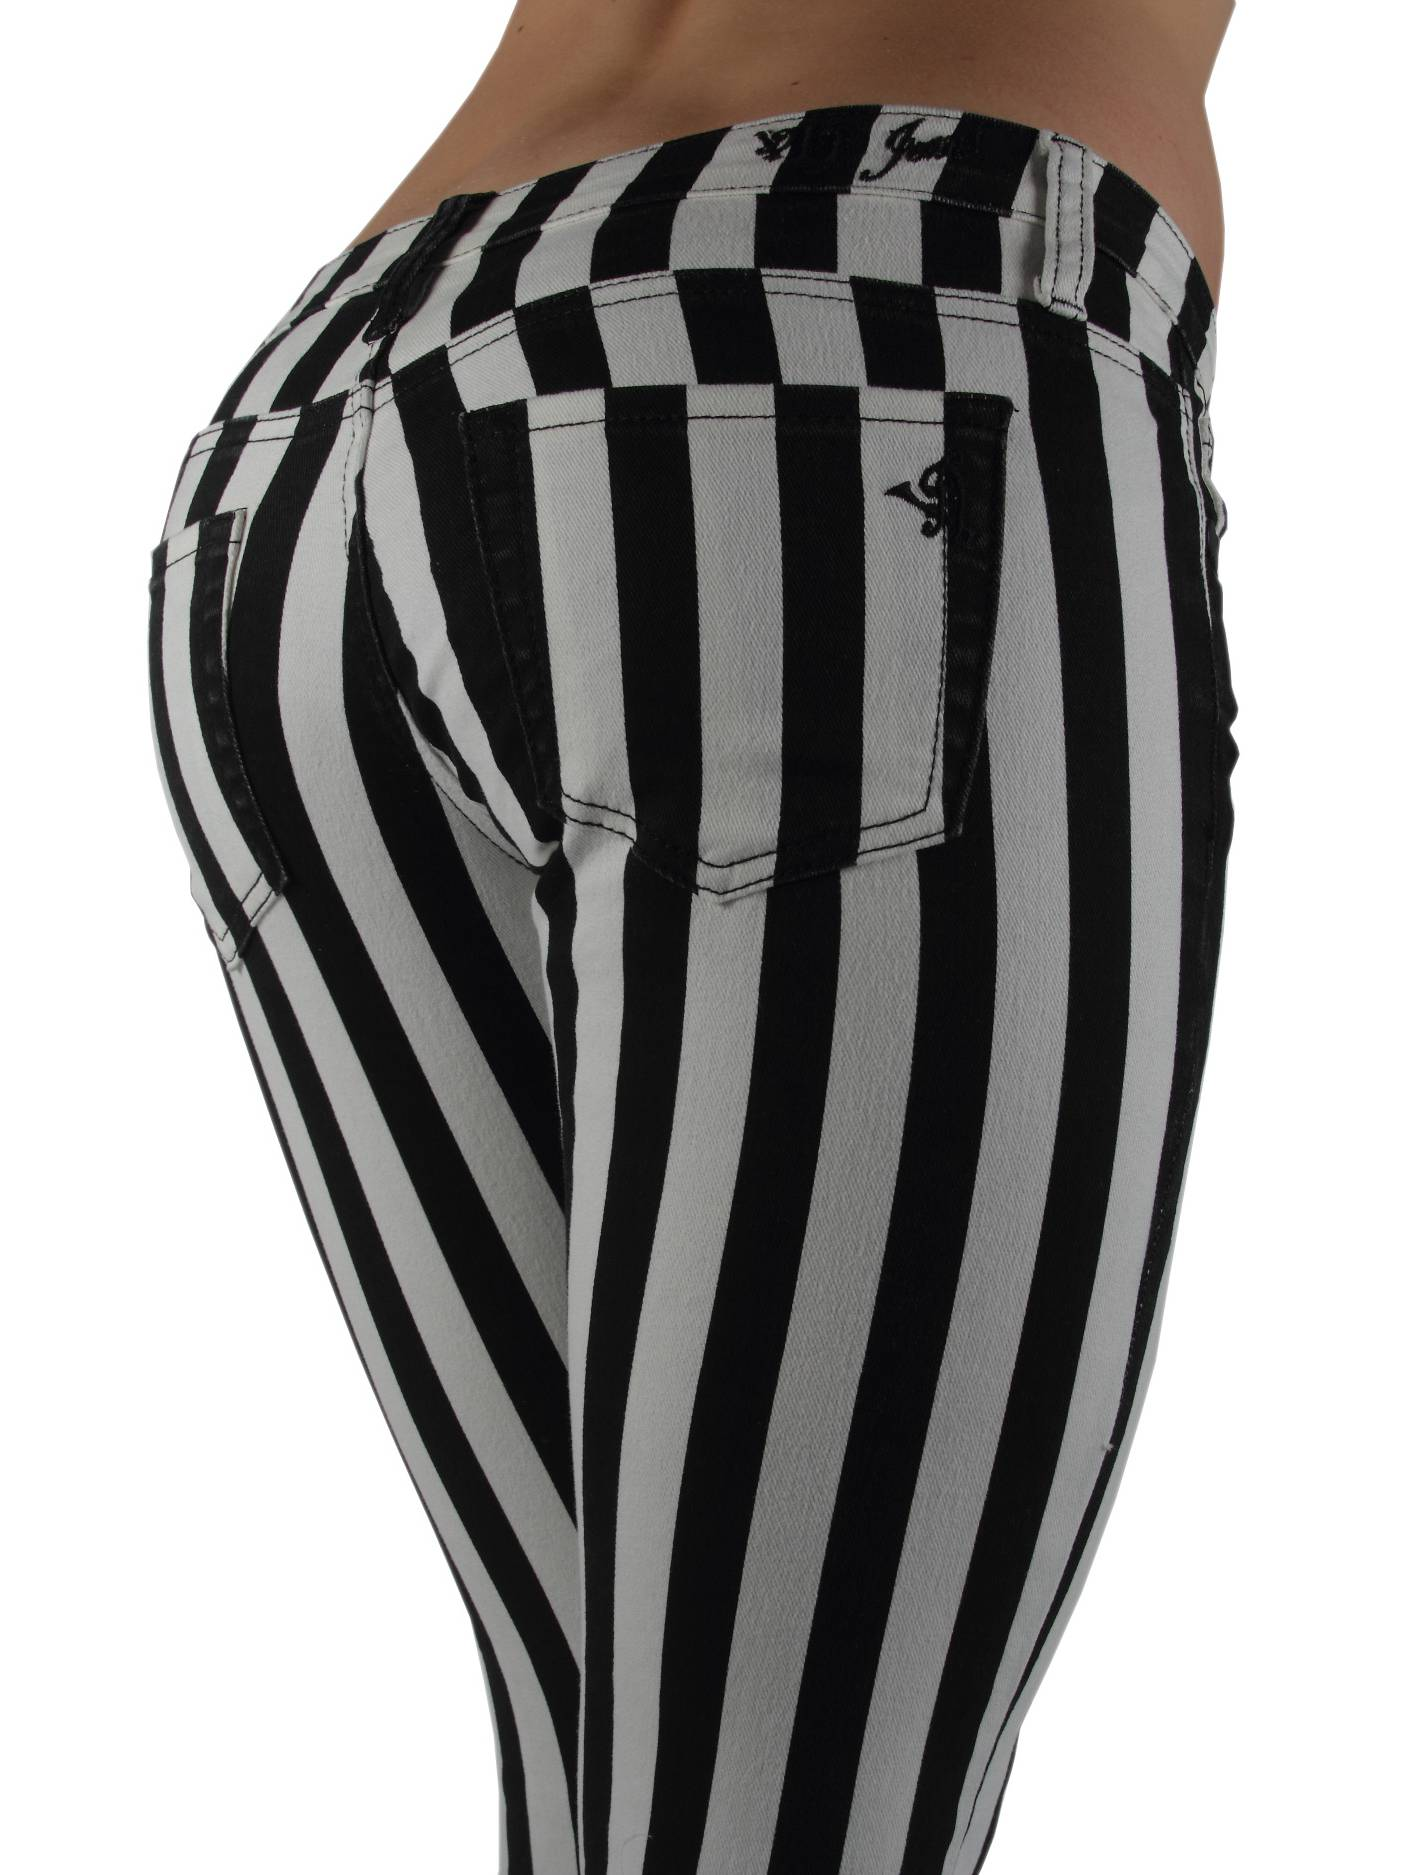 6065 - Black & White Striped 5 Pockets Classic Skinny Jeans